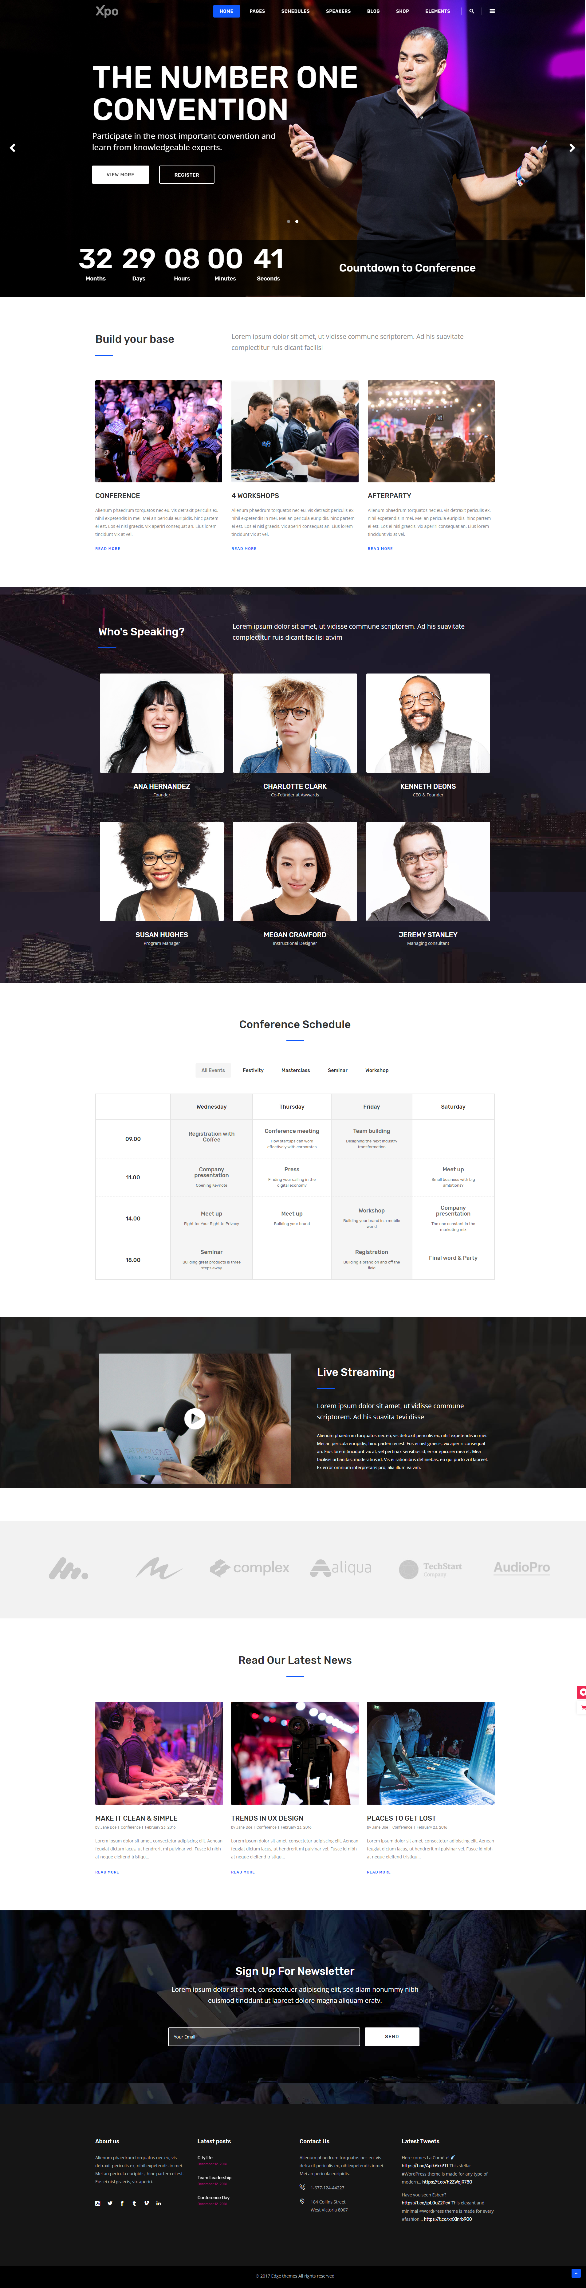 Xpo Conference WordPress Theme